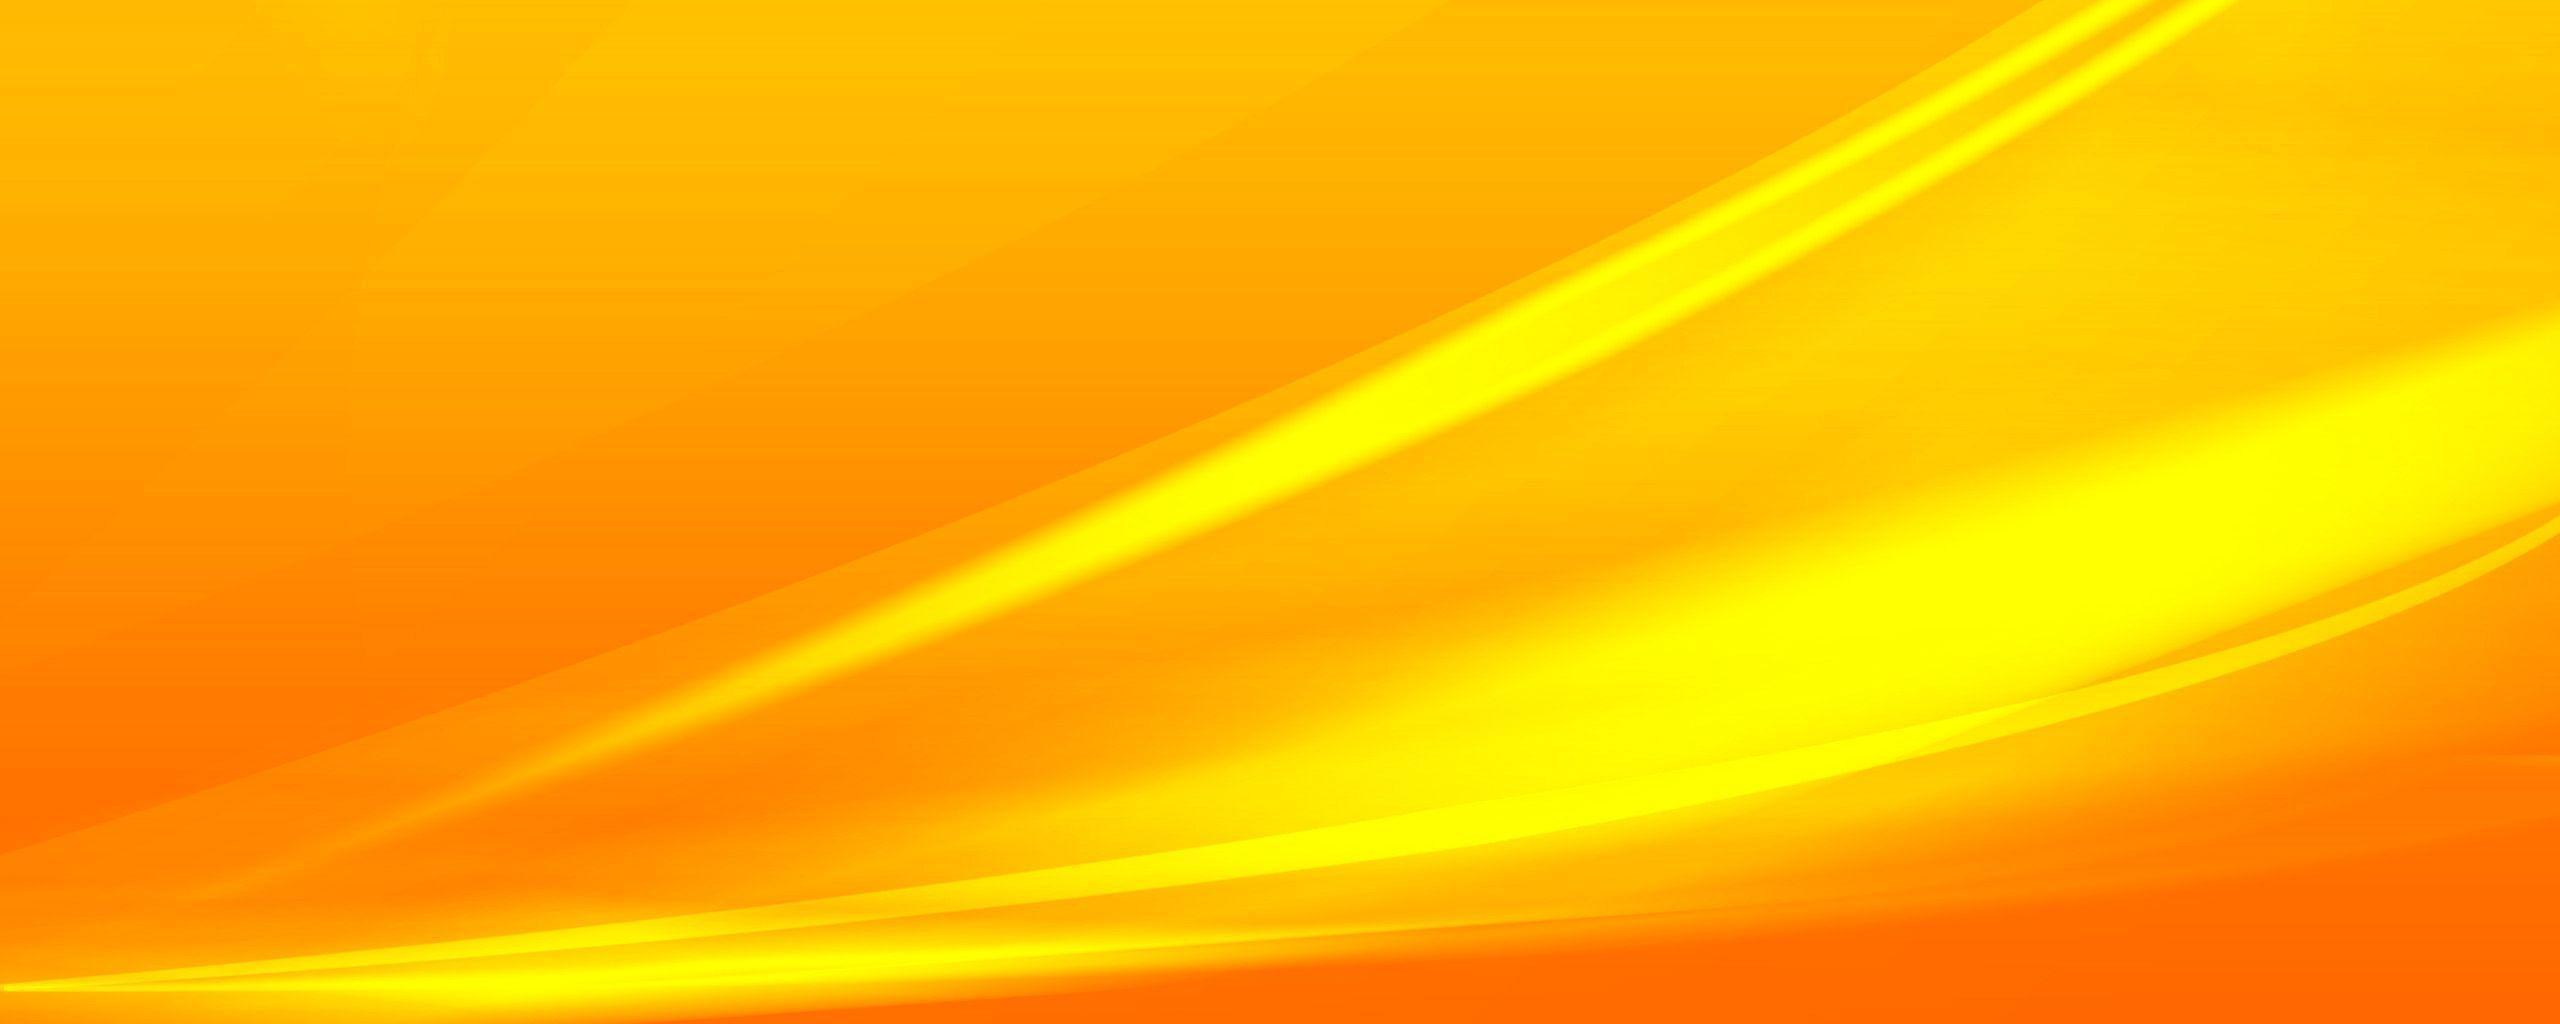 Wallpapers For Gt Hd Backgrounds Yellow | High Definition images